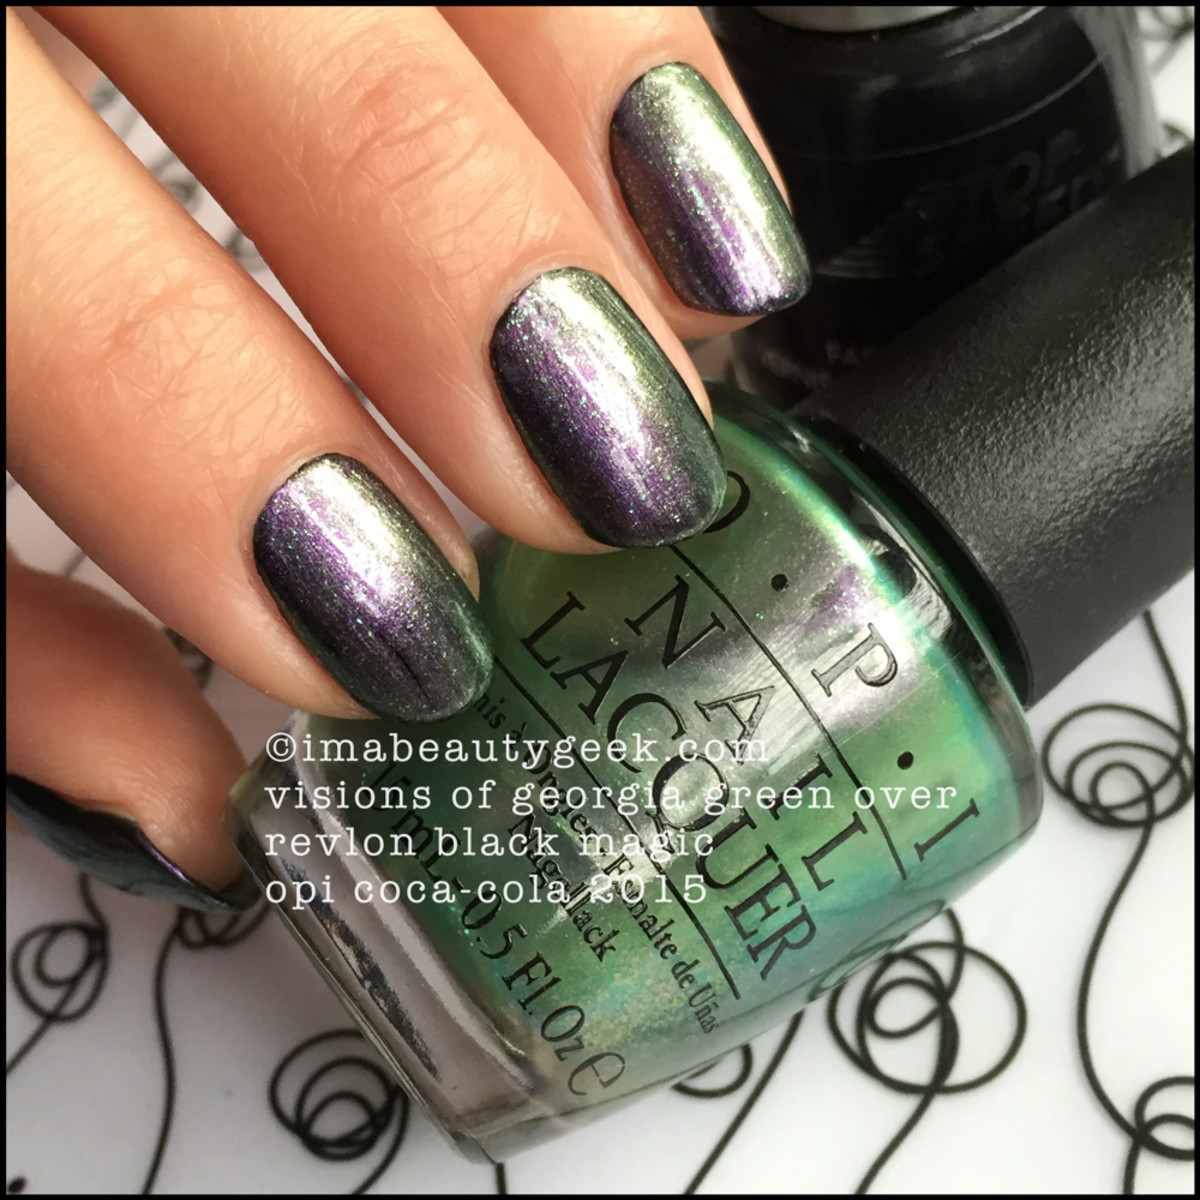 OPI Coca-Cola 2015 OPI Visions of Georgia Green over Black